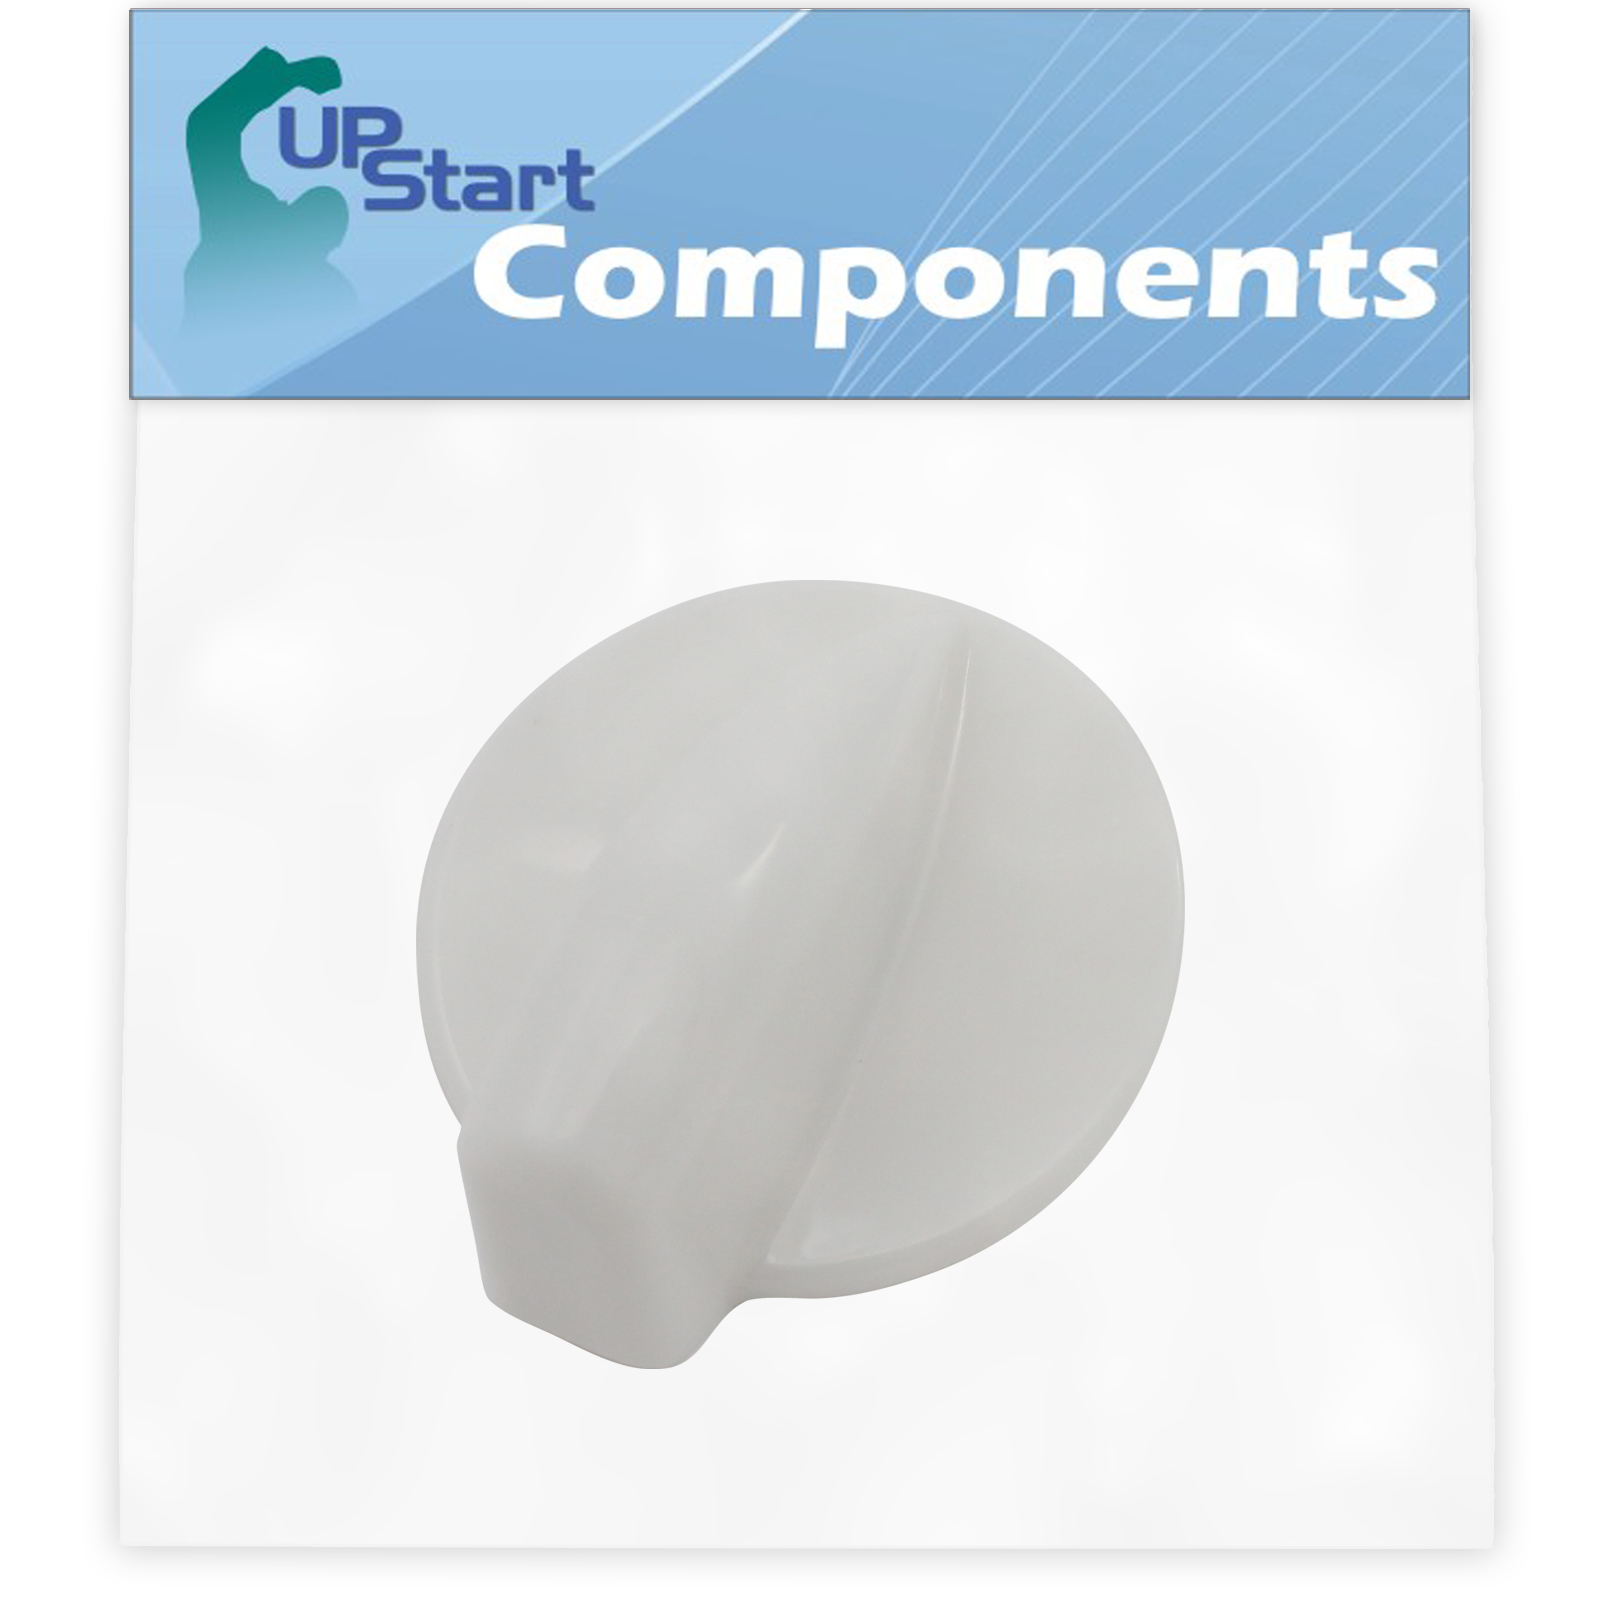 Replacement Dryer Timer Knob WP8181946 for Whirlpool GHW9250MT1 Residential Washer - image 4 of 4